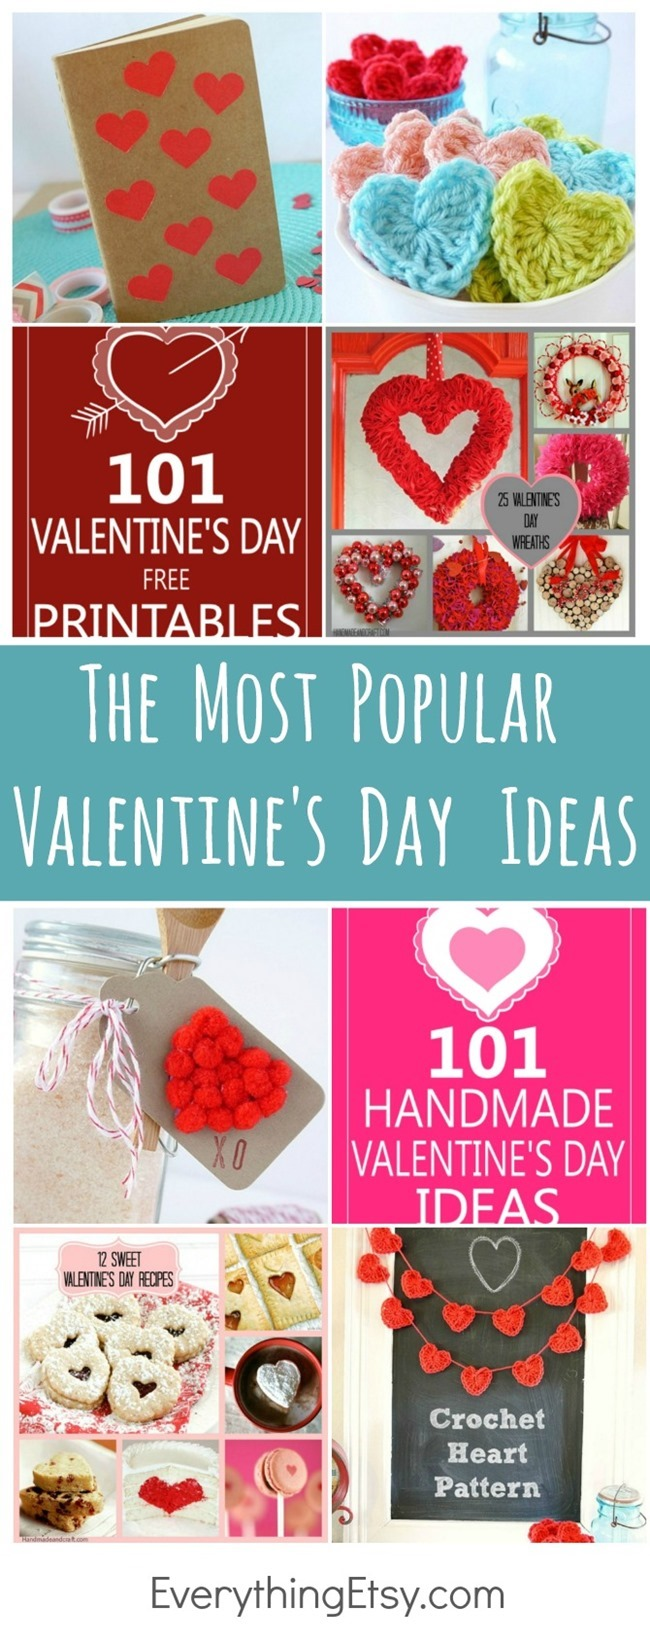 Valentine's Day Ideas - The Most Popular Ones!